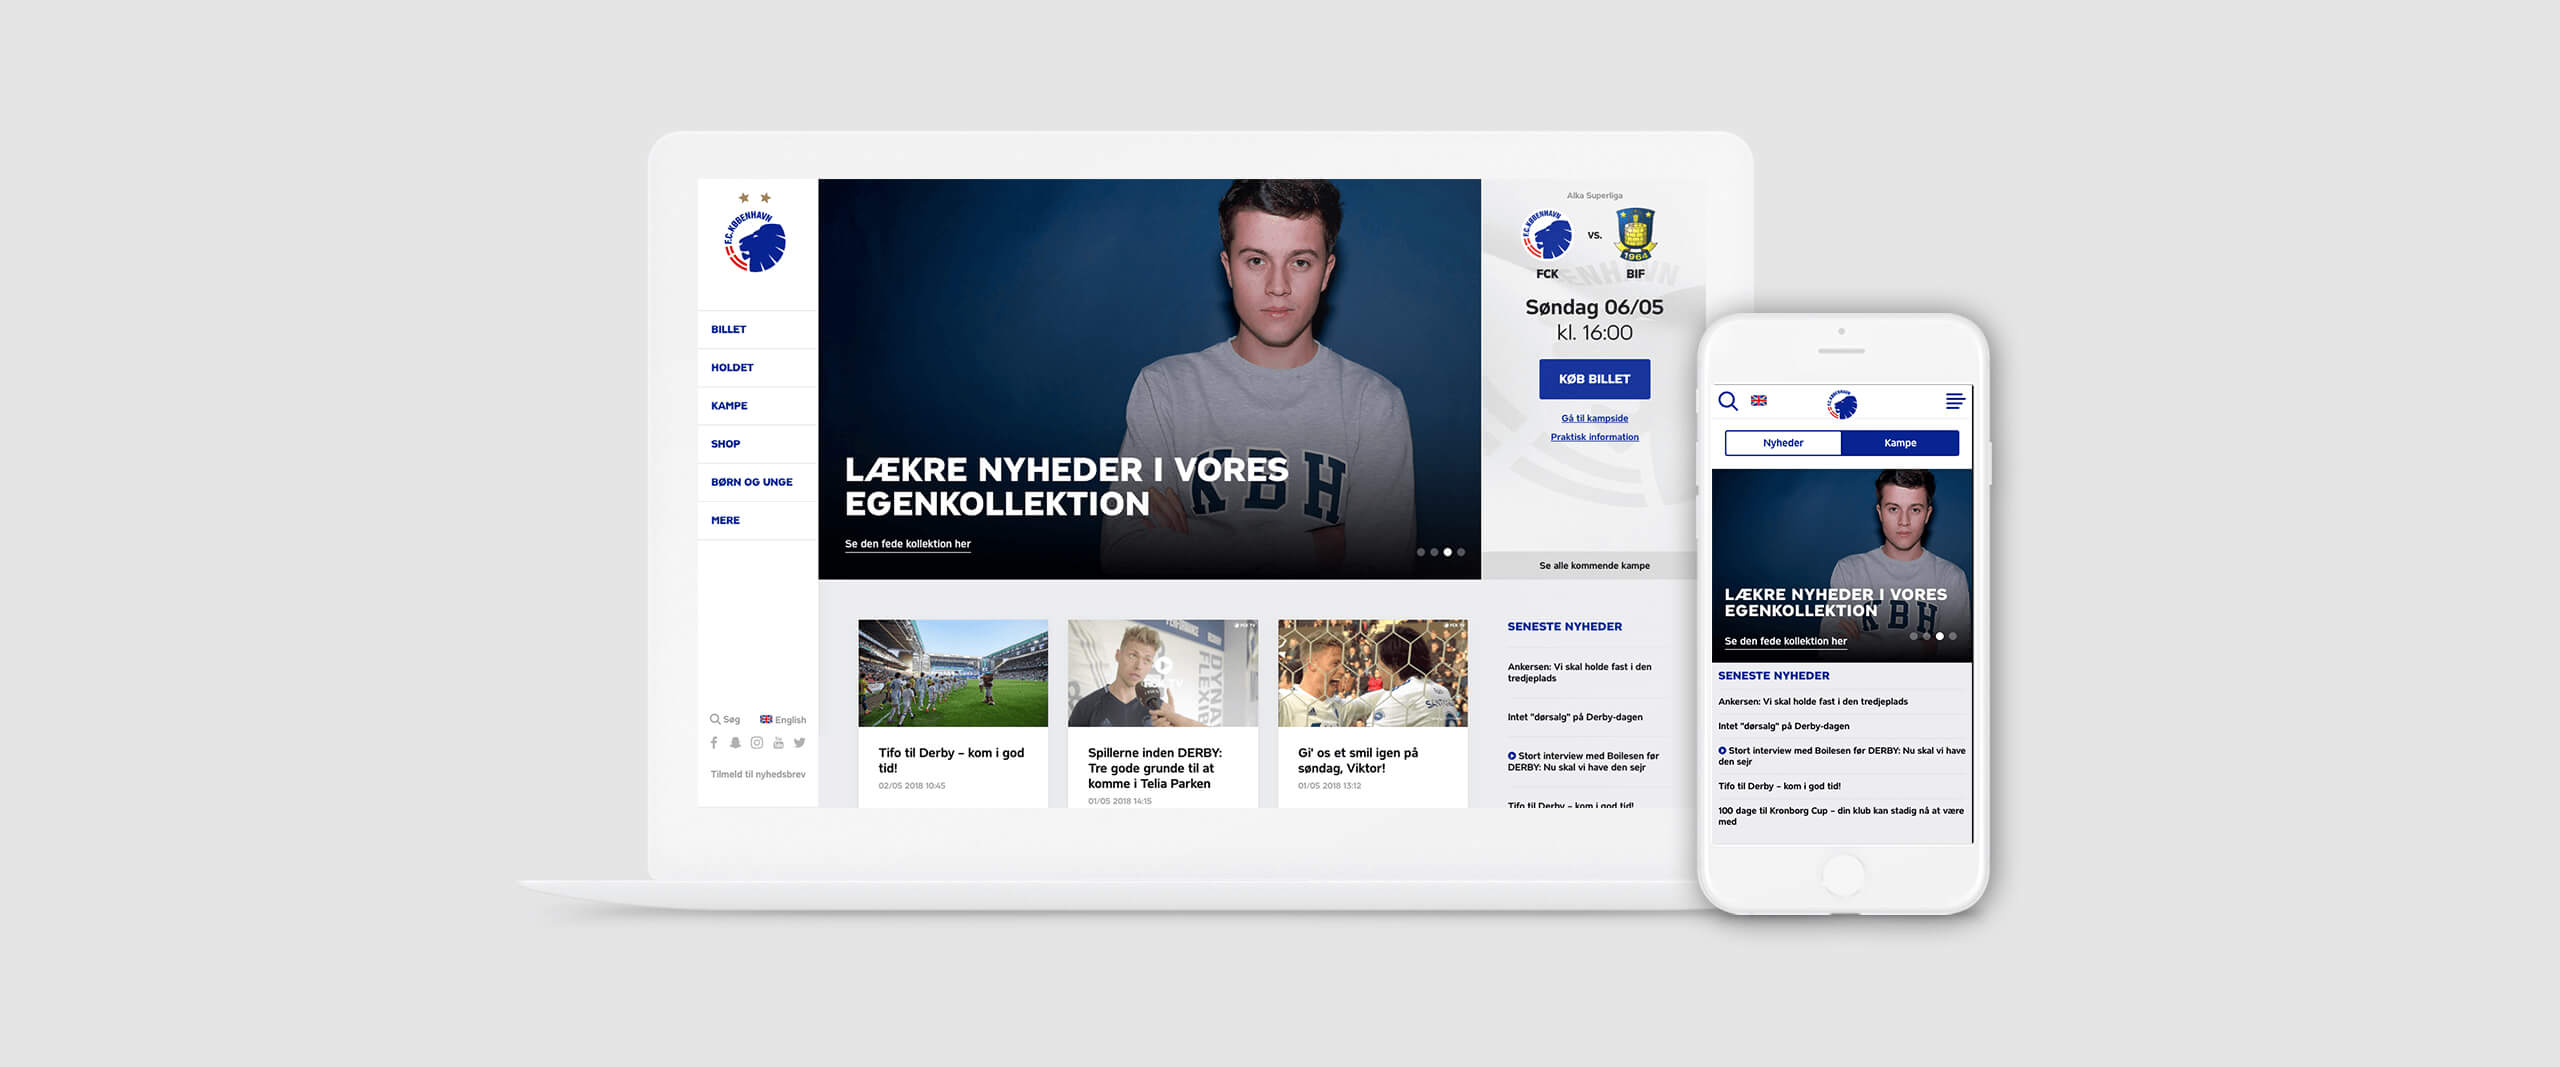 Image of F.C.Copenhagen home page